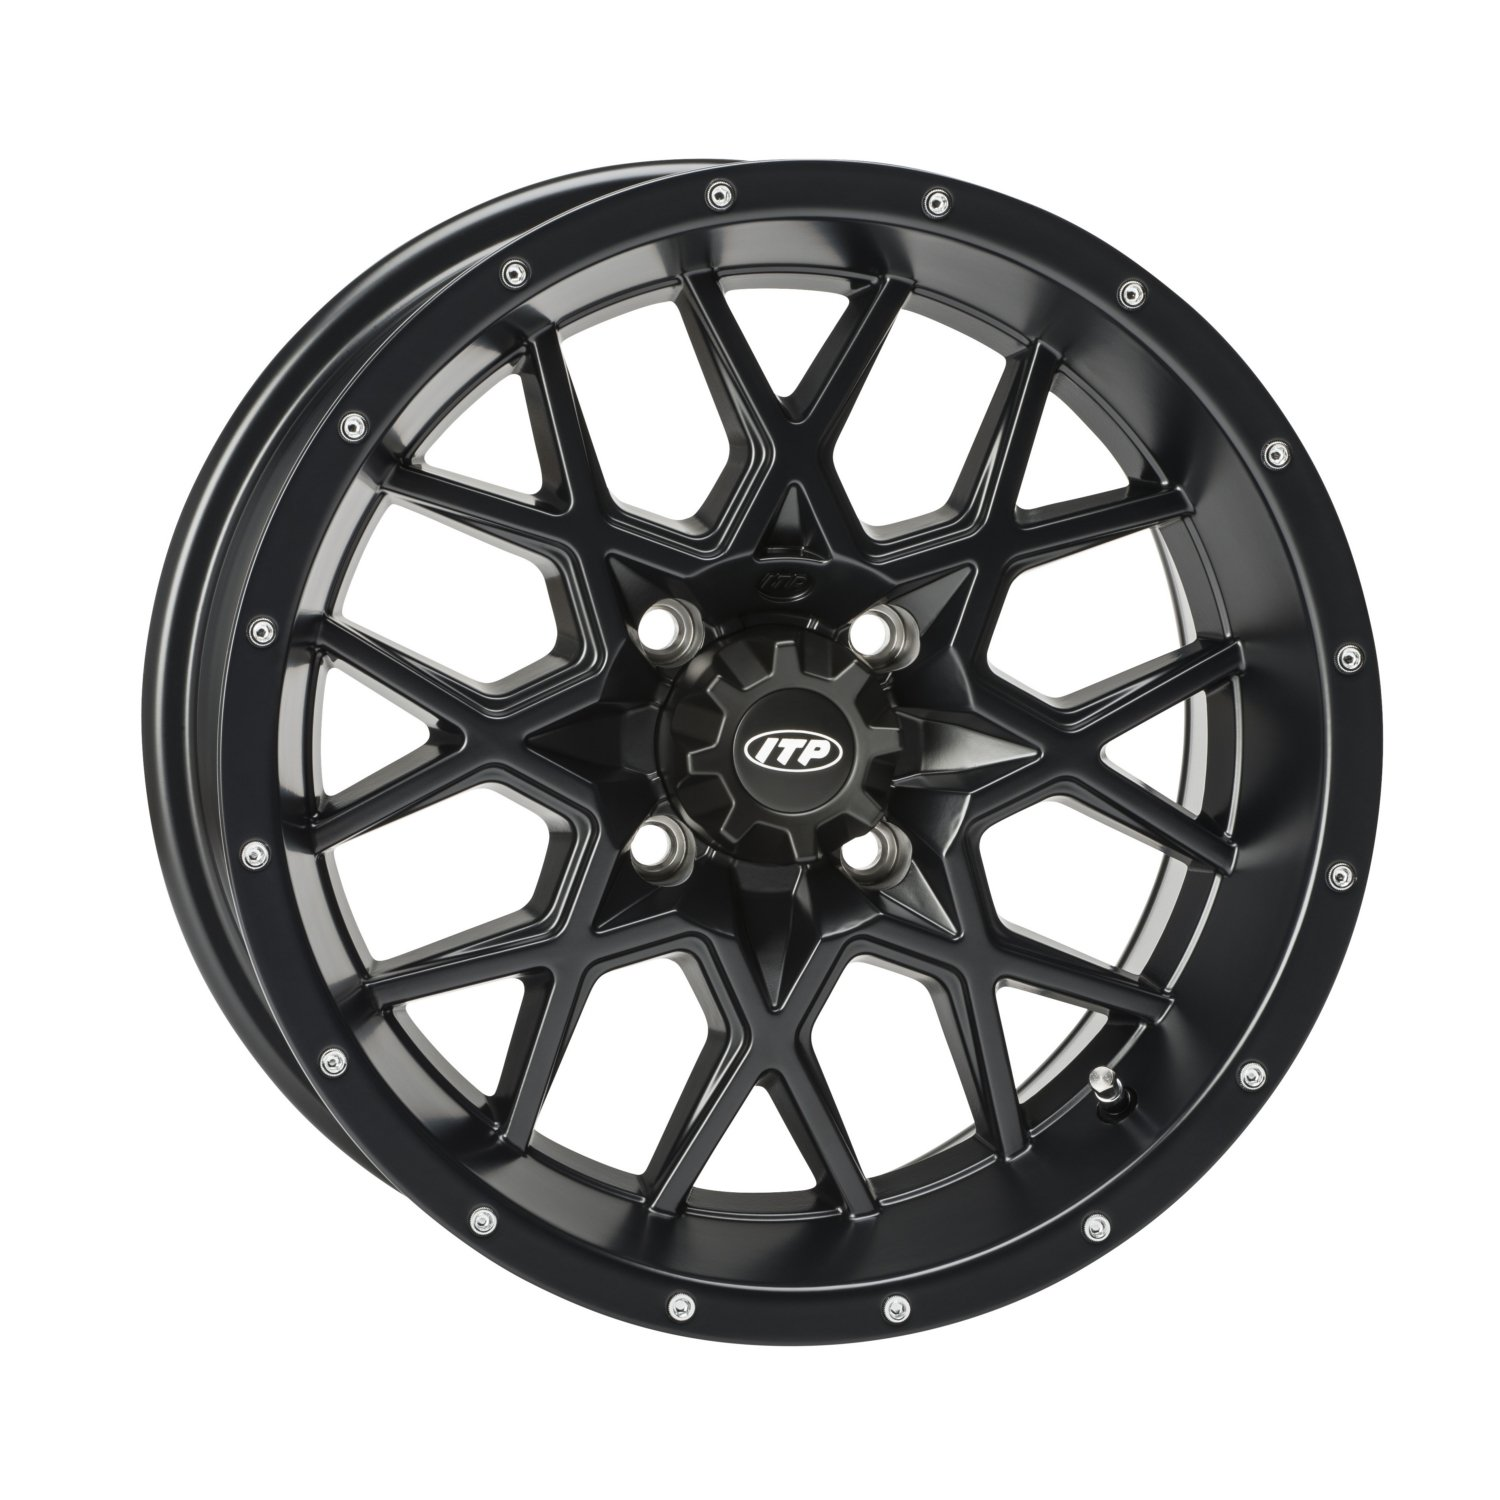 ITP 1428639536B Hurricane Matte Black Wheel with Machined Finish (14x7''/4x4mm)